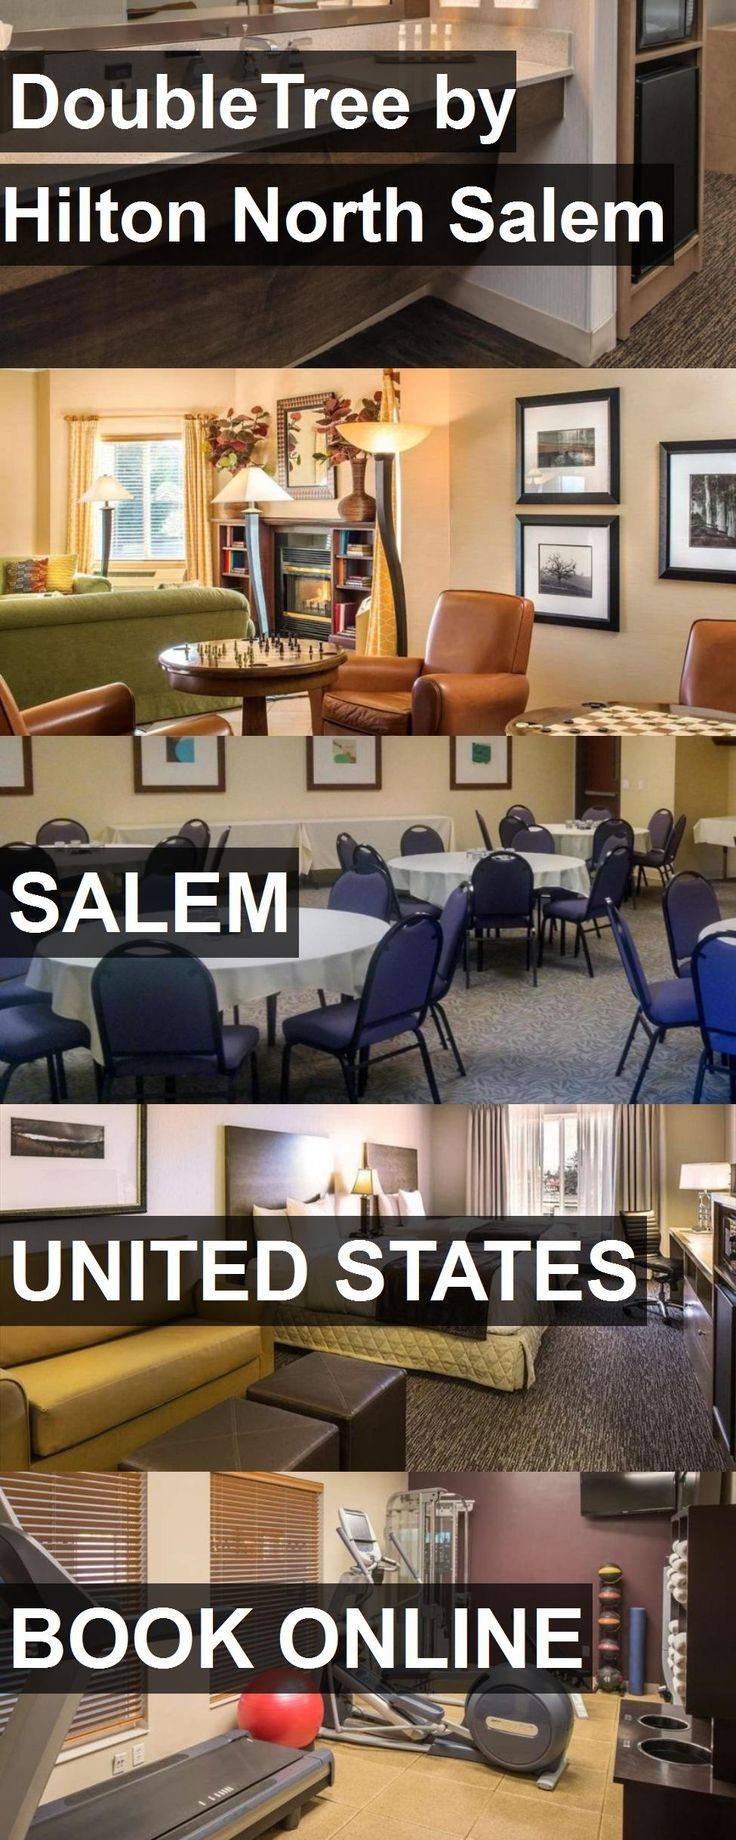 Hotel DoubleTree by Hilton North Salem in Salem, United States. For more information, photos, reviews and best prices please follow the link. #UnitedStates #Salem #travel #vacation #hotel